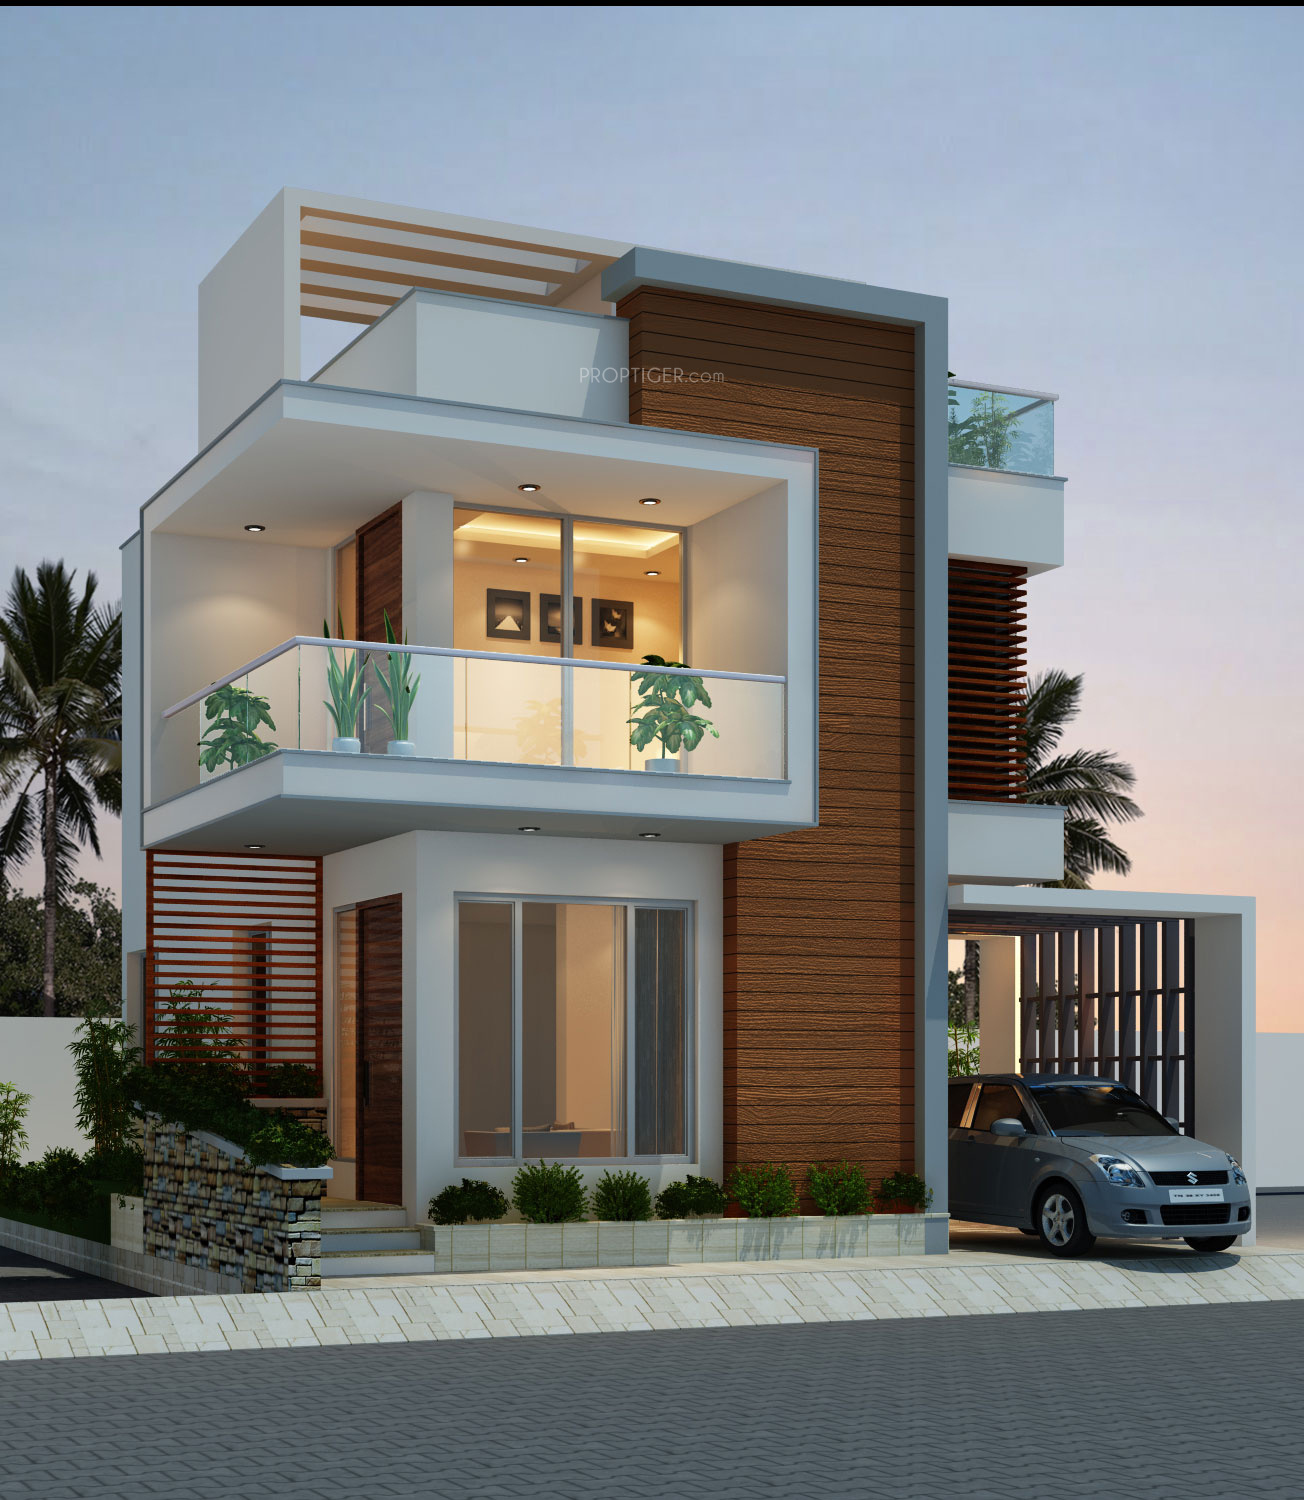 Residential Front Elevation Images : Headway fortune residency villa in perungalathur chennai